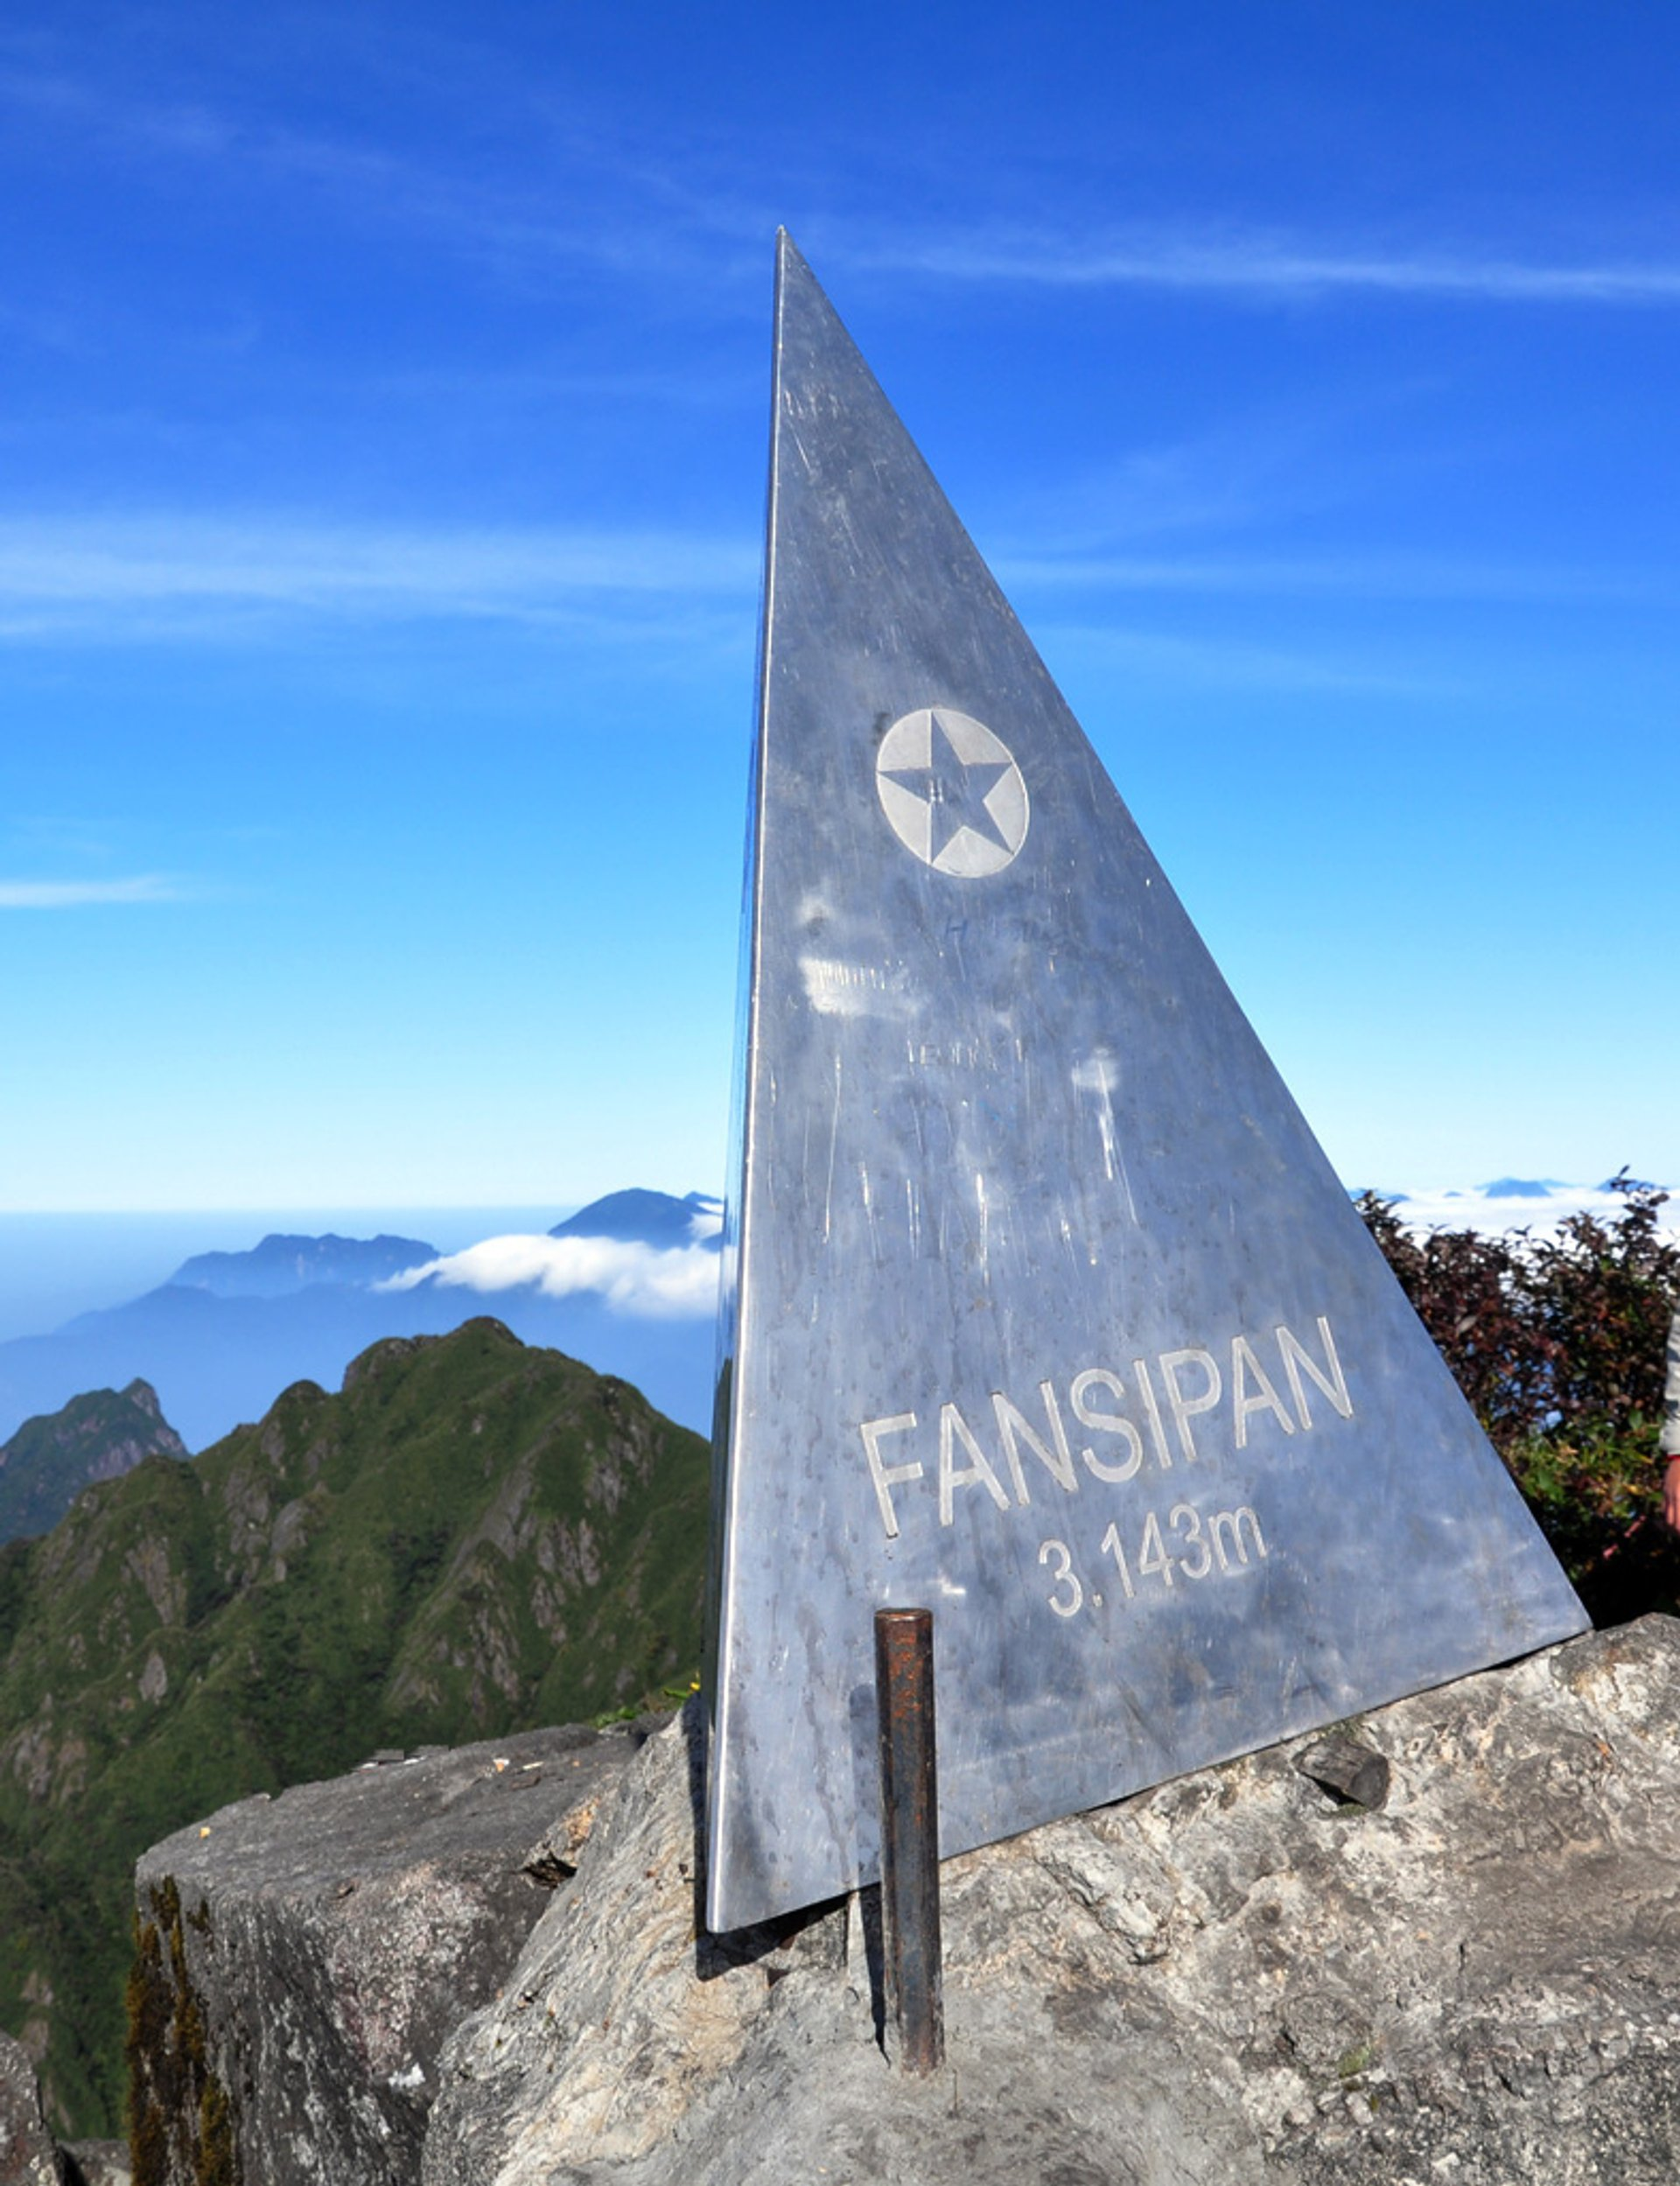 Best time for Conquering Fansipan in Vietnam 2019